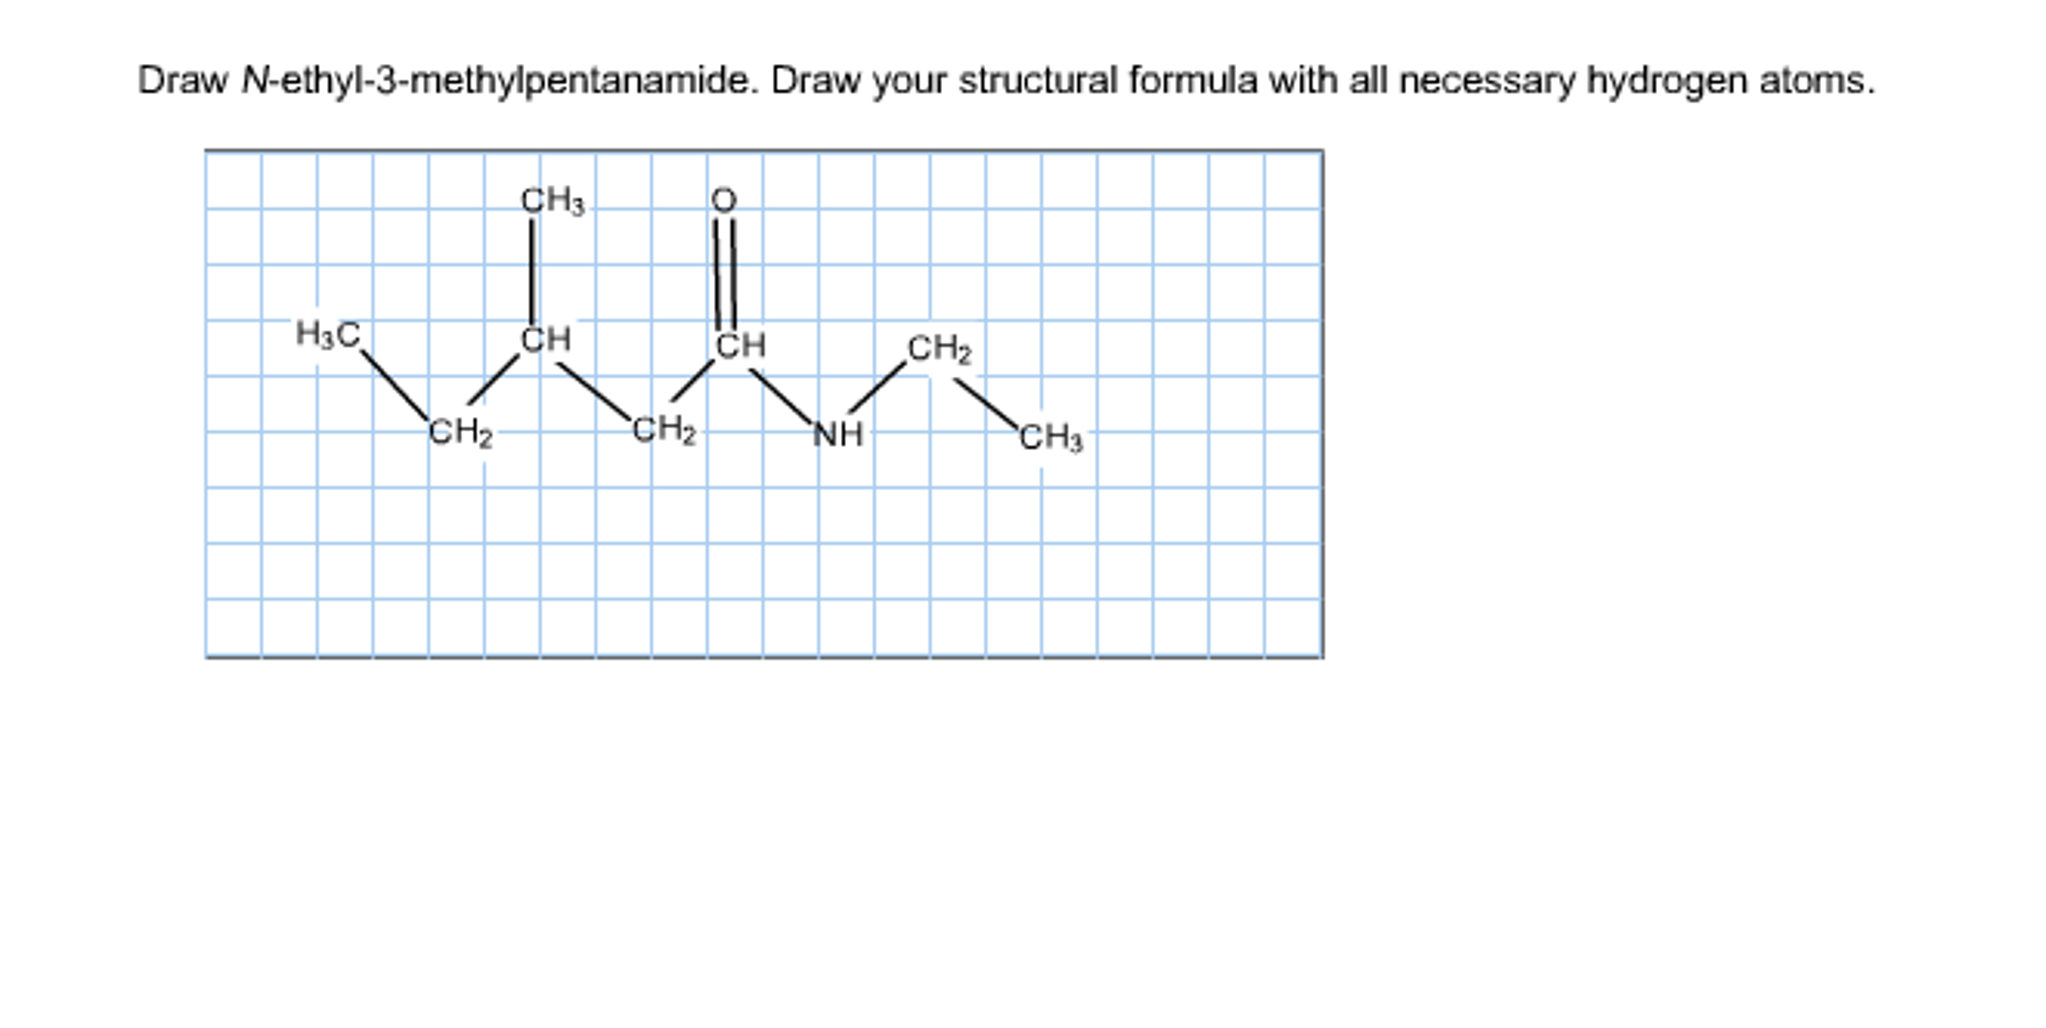 Solved: Draw N-ethyl-3-methylpentanamide. Draw Your Struct ... H2 Structural Formula